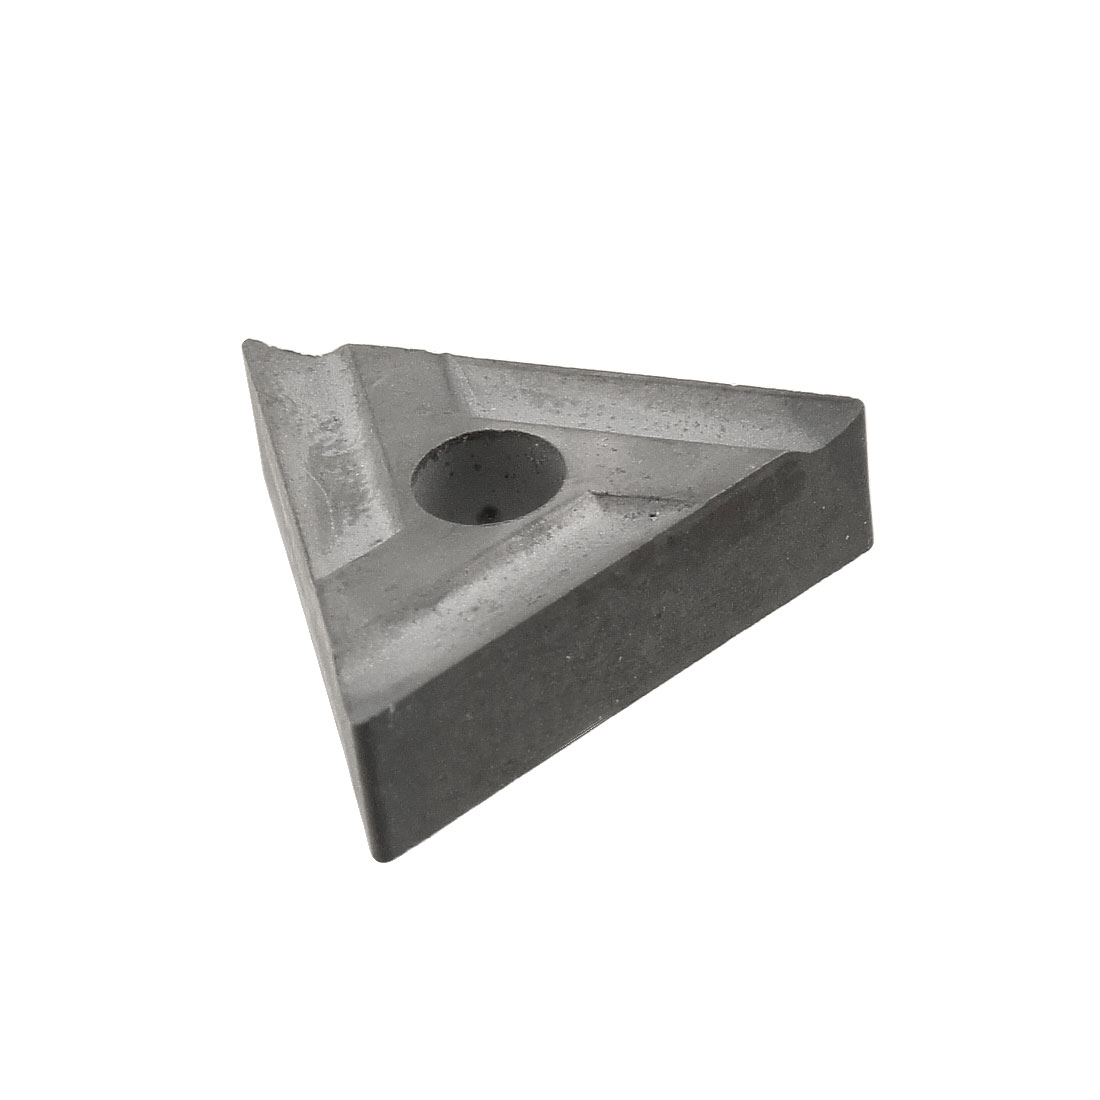 Triangular CNC Lathe Milling Carbide Insert Cutting Tool 3K1605 YT15